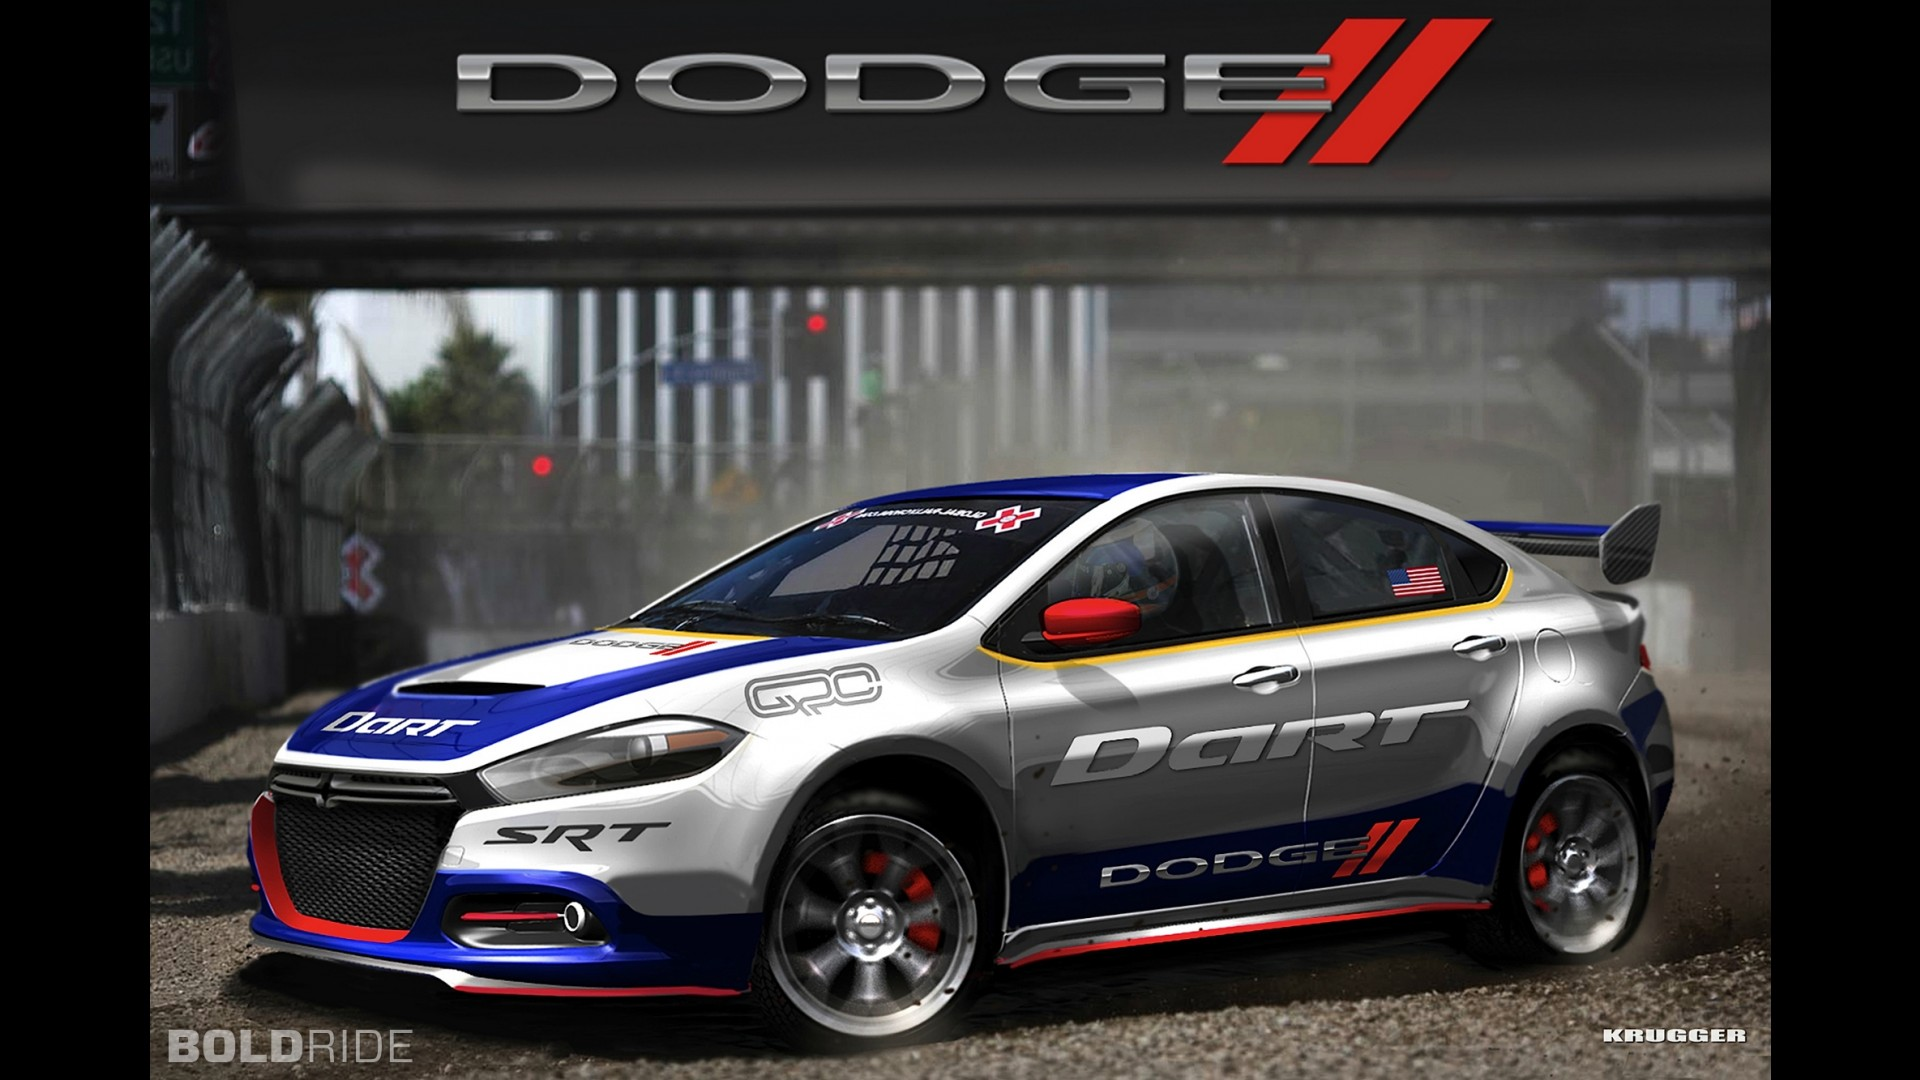 Srt Dodge Dart >> Dodge Dart Rally Car